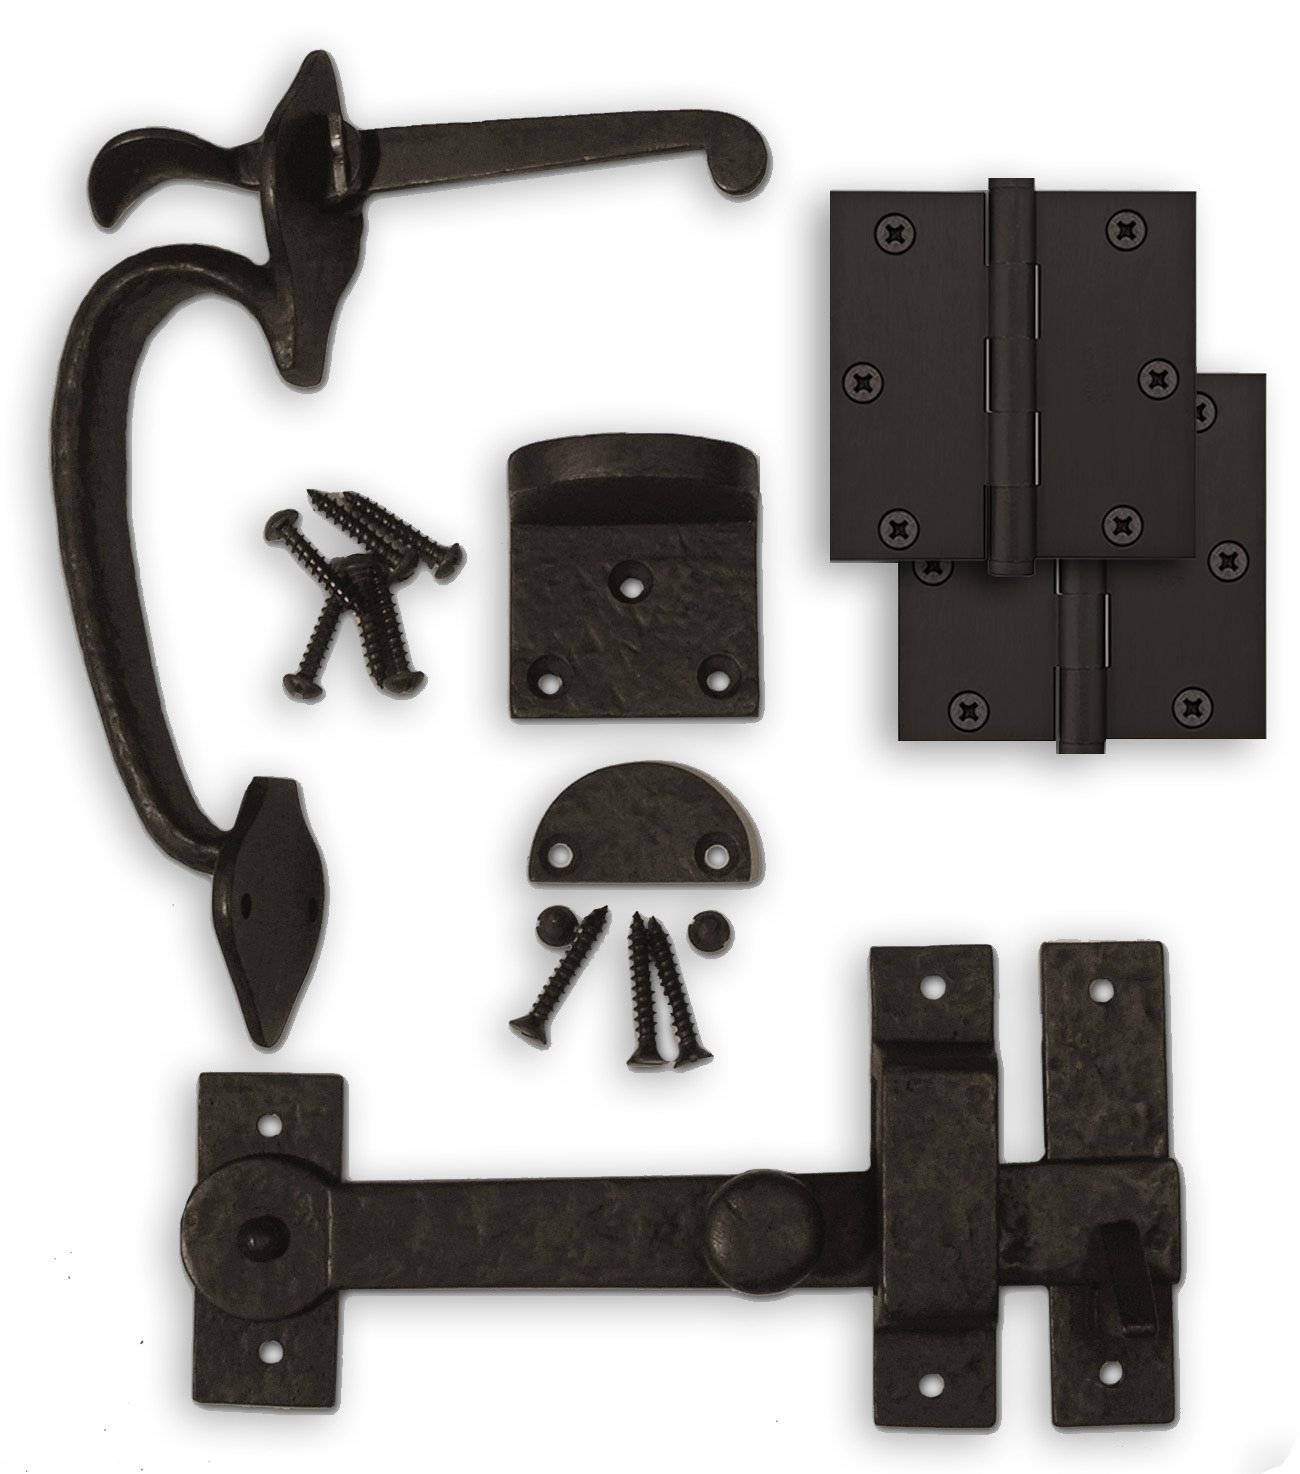 Coastal Bronze - Complete Gate Kit - Hinges / Thumb Latch / Drop Bar Set by Coastal Bronze